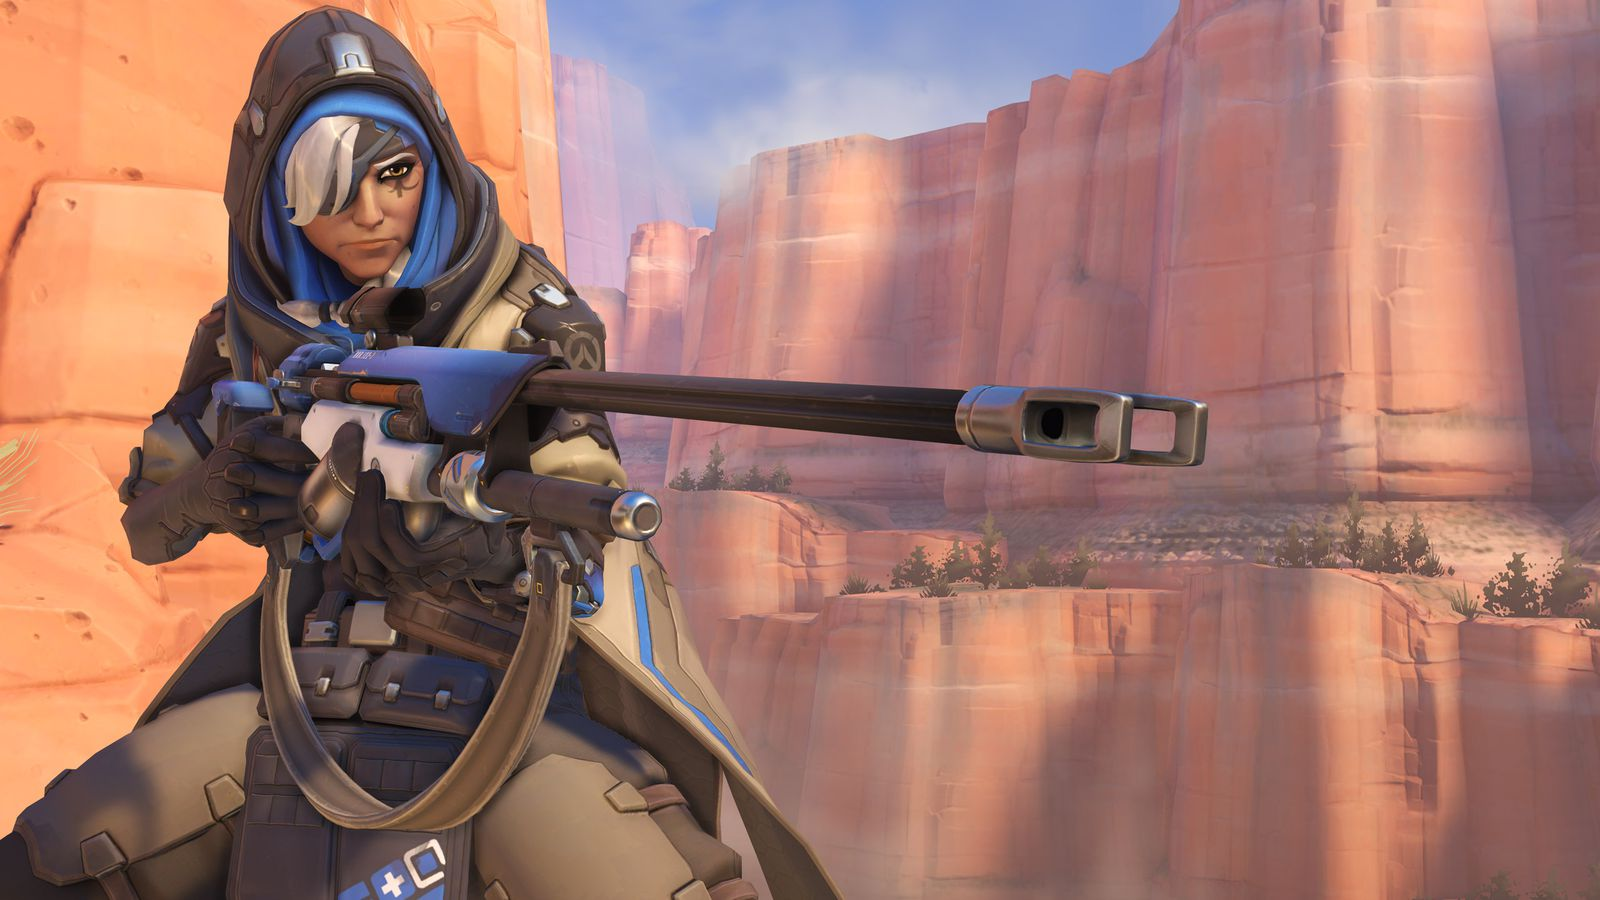 Overwatch's latest patch brings Ana to PS4 and more ...